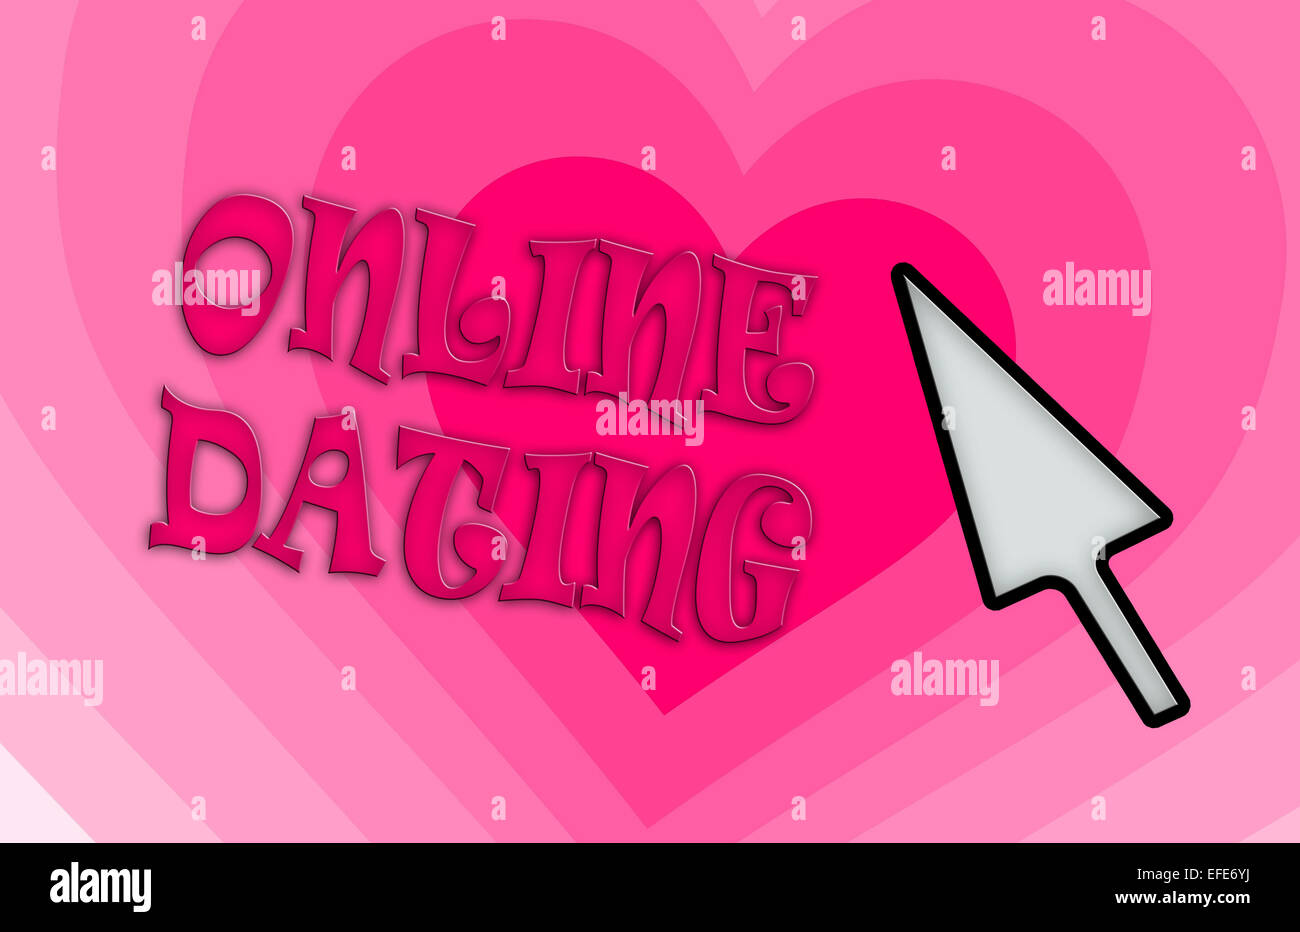 Heart shape backgound - Concept of dating - pink - Stock Image